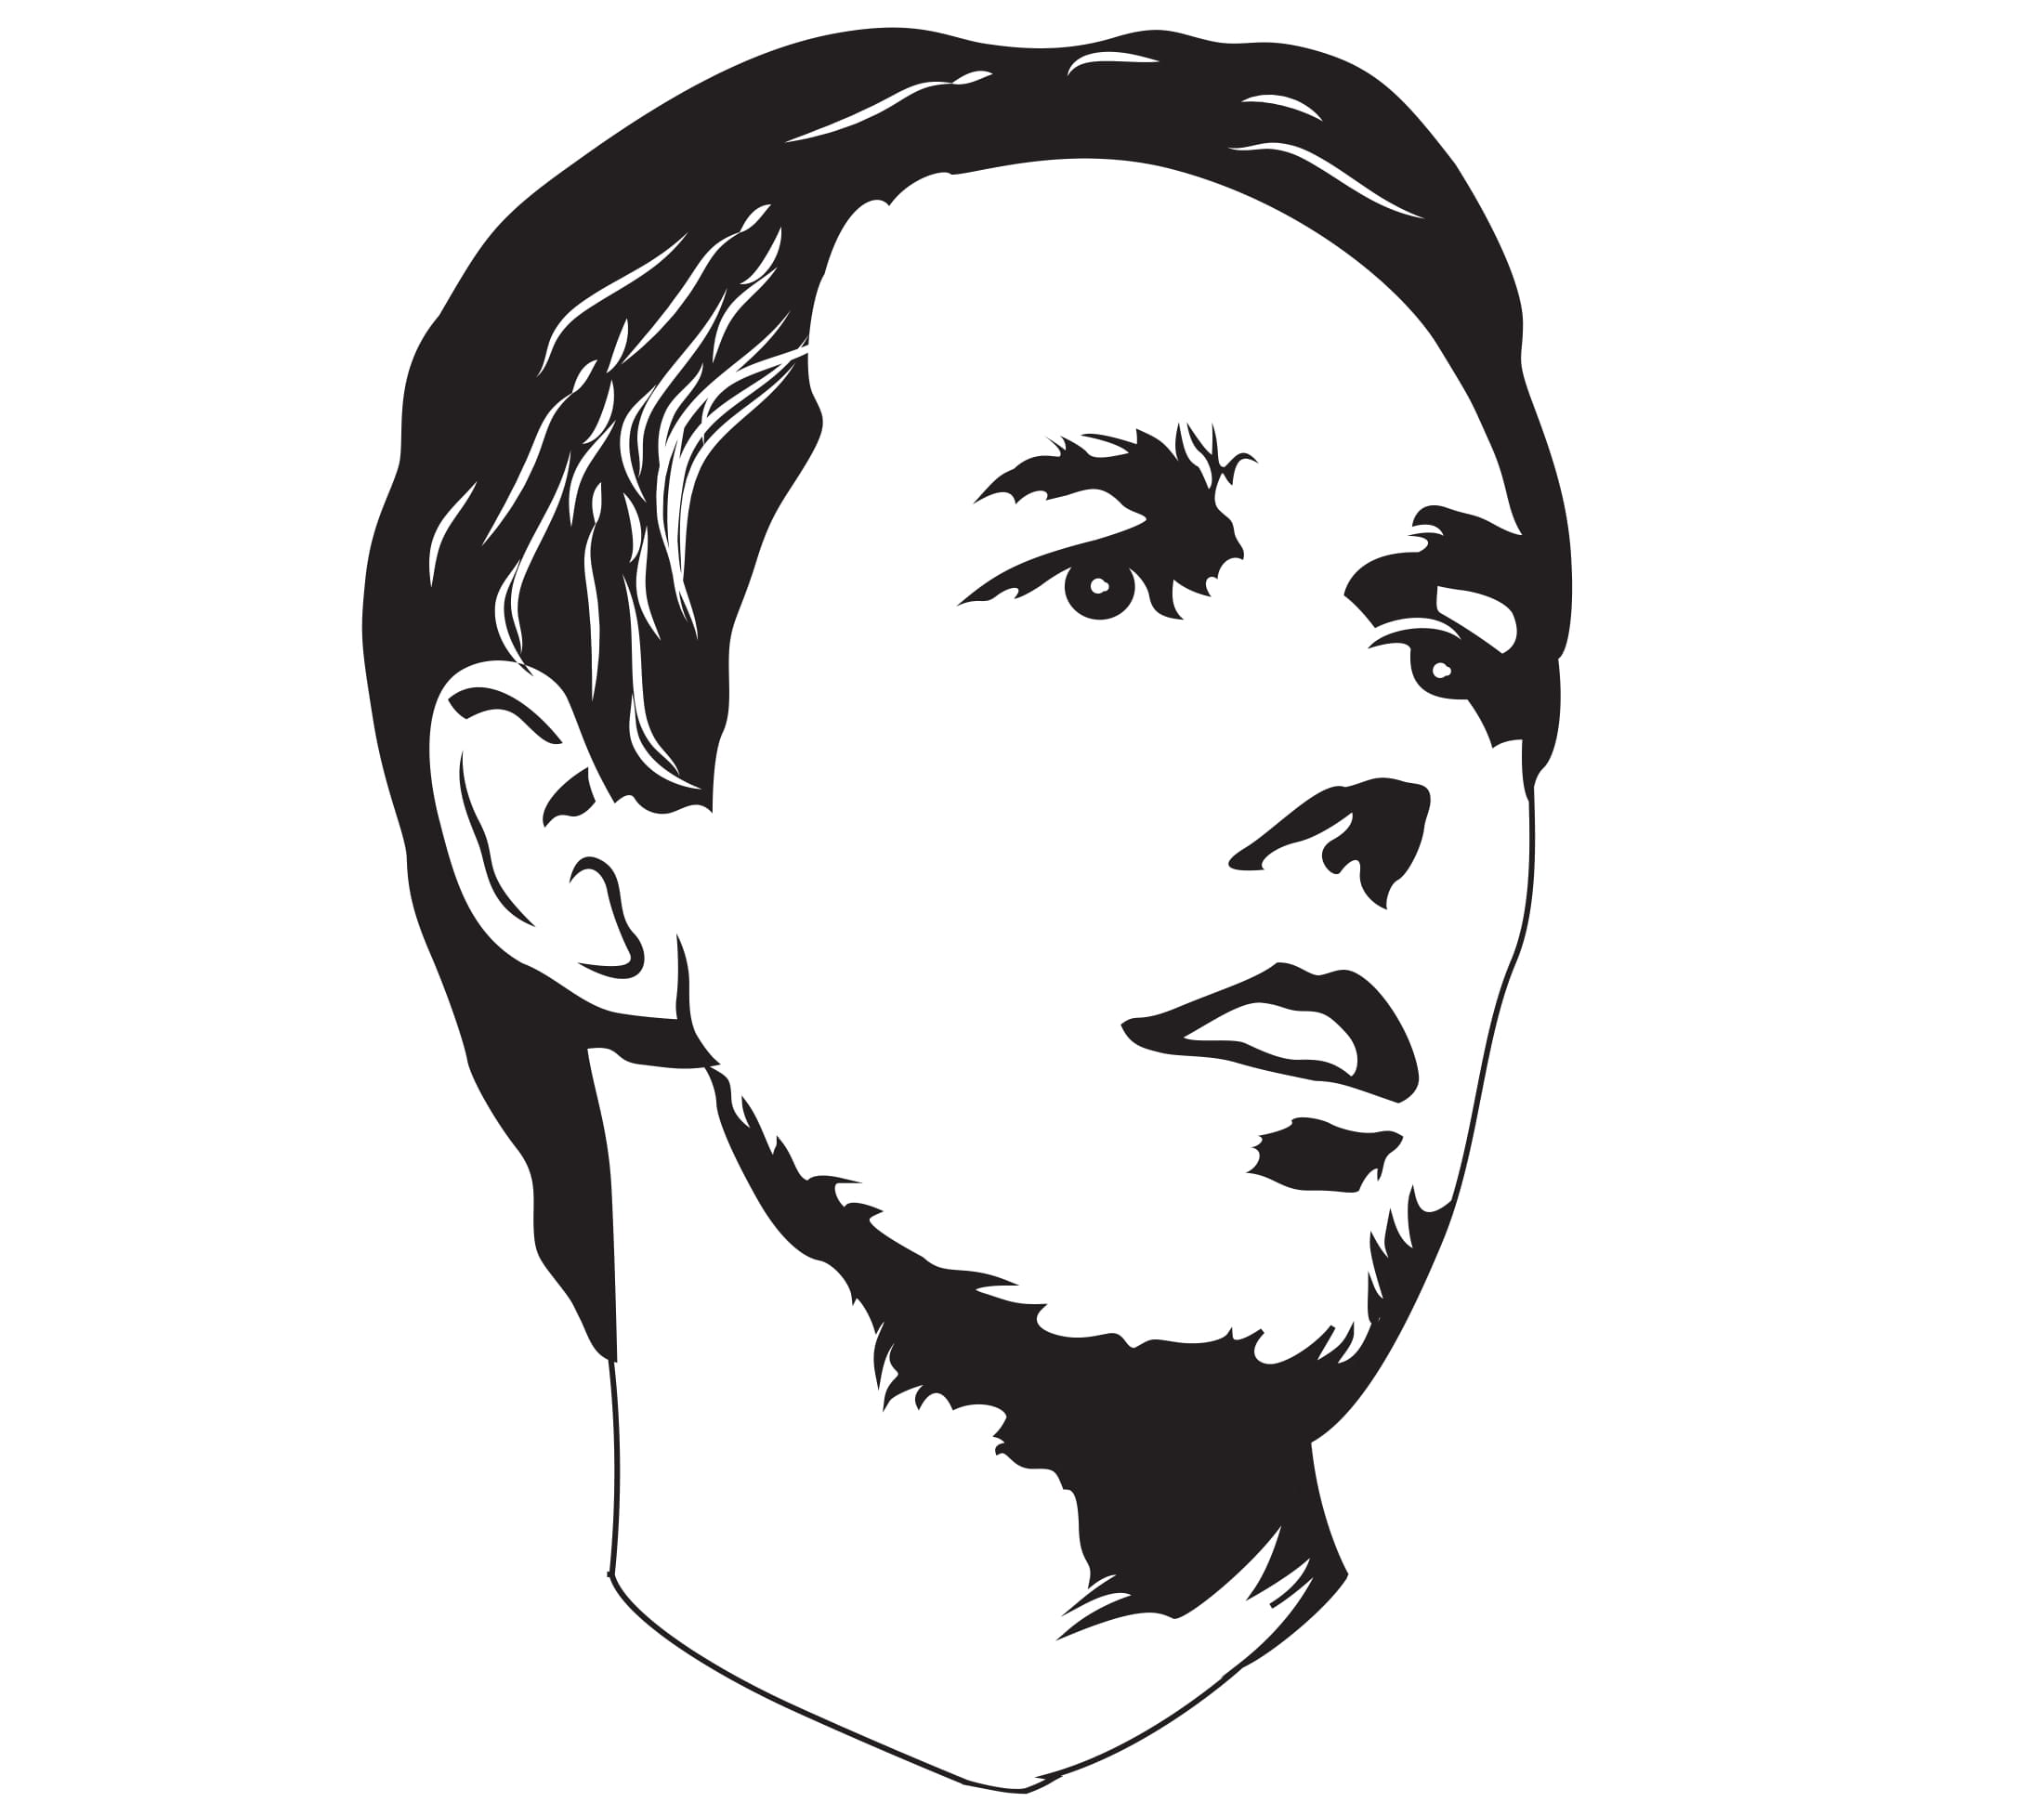 Beto clipart graphic royalty free stock Free The Resistance - Free Download Artworks graphic royalty free stock